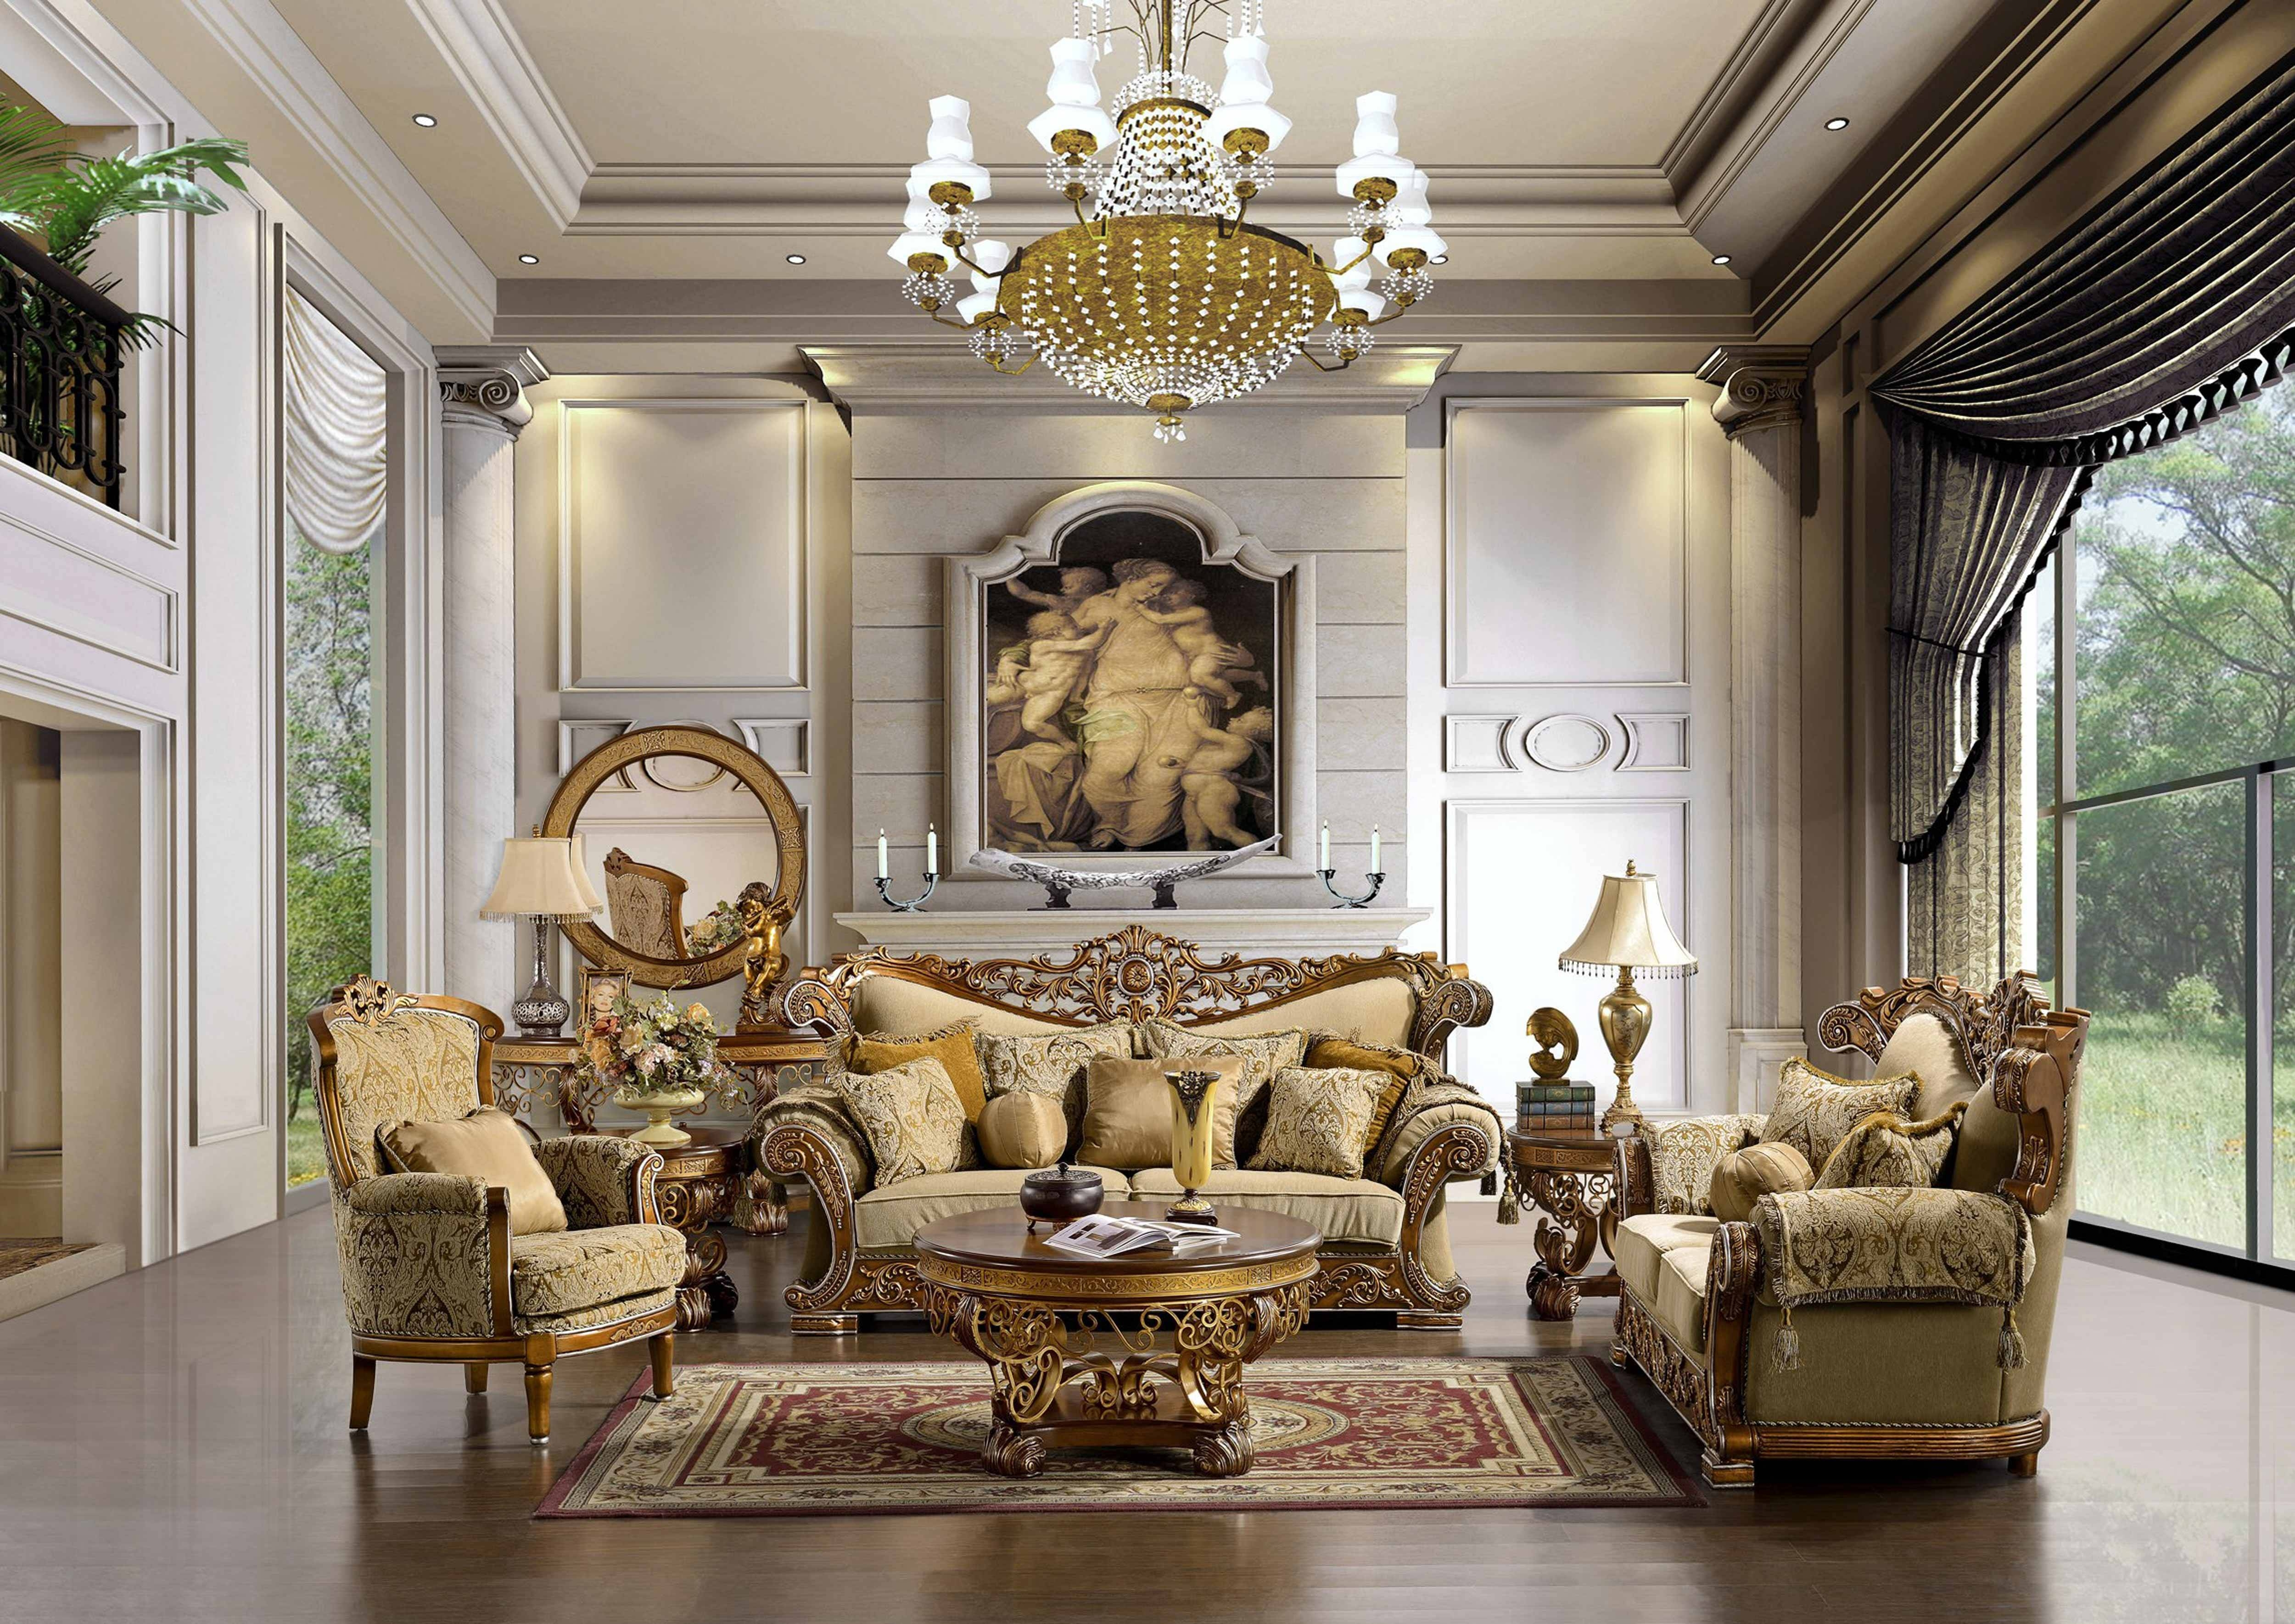 Living Room: Luxury Living Room With Classy Sofa Set With Elegant intended for Elegant Sofas and Chairs (Image 12 of 15)